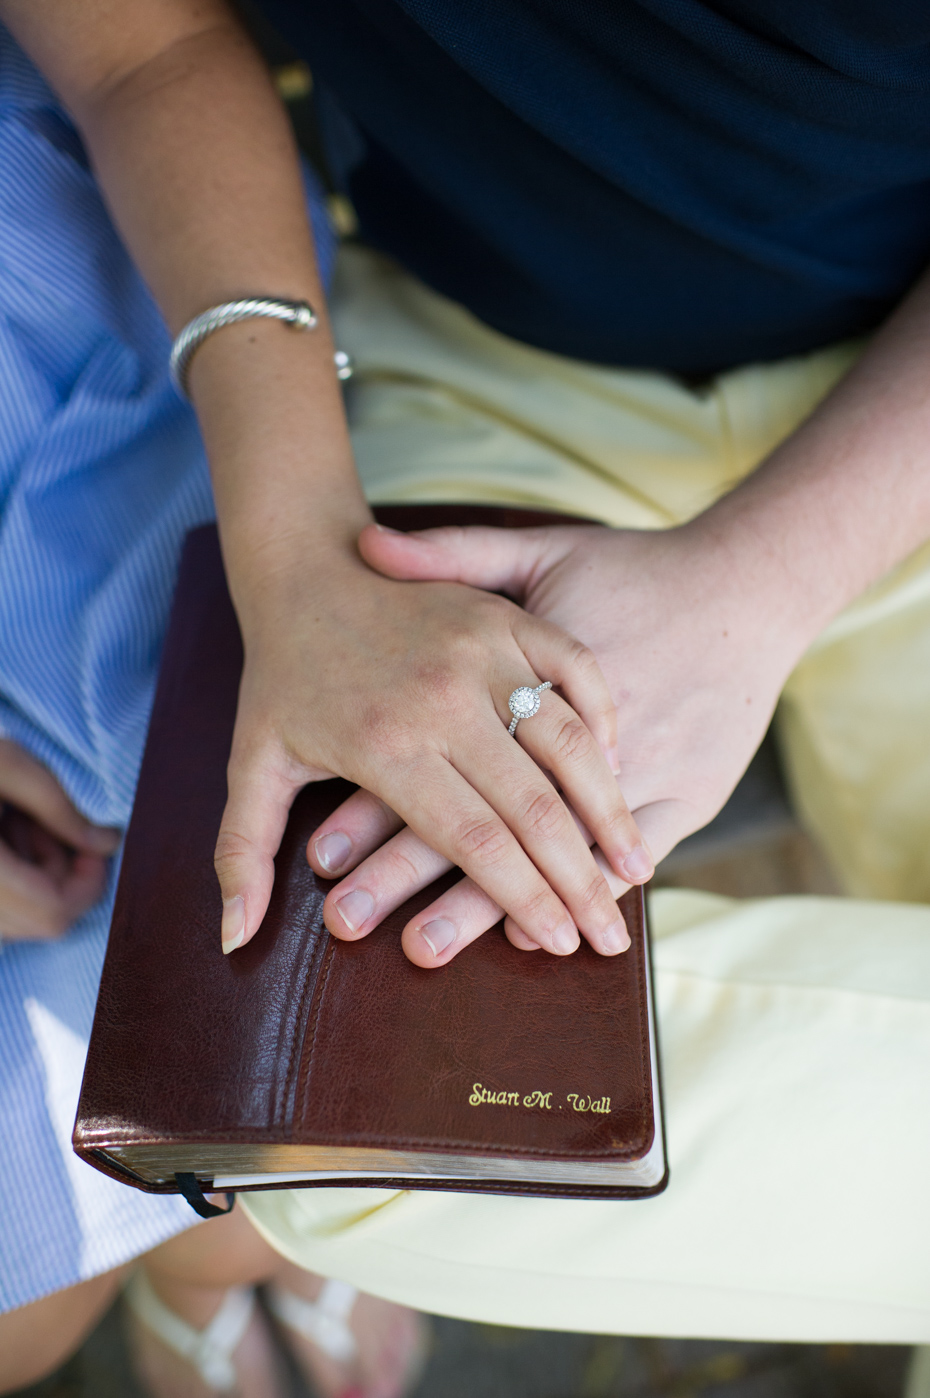 The bible in engagement photos